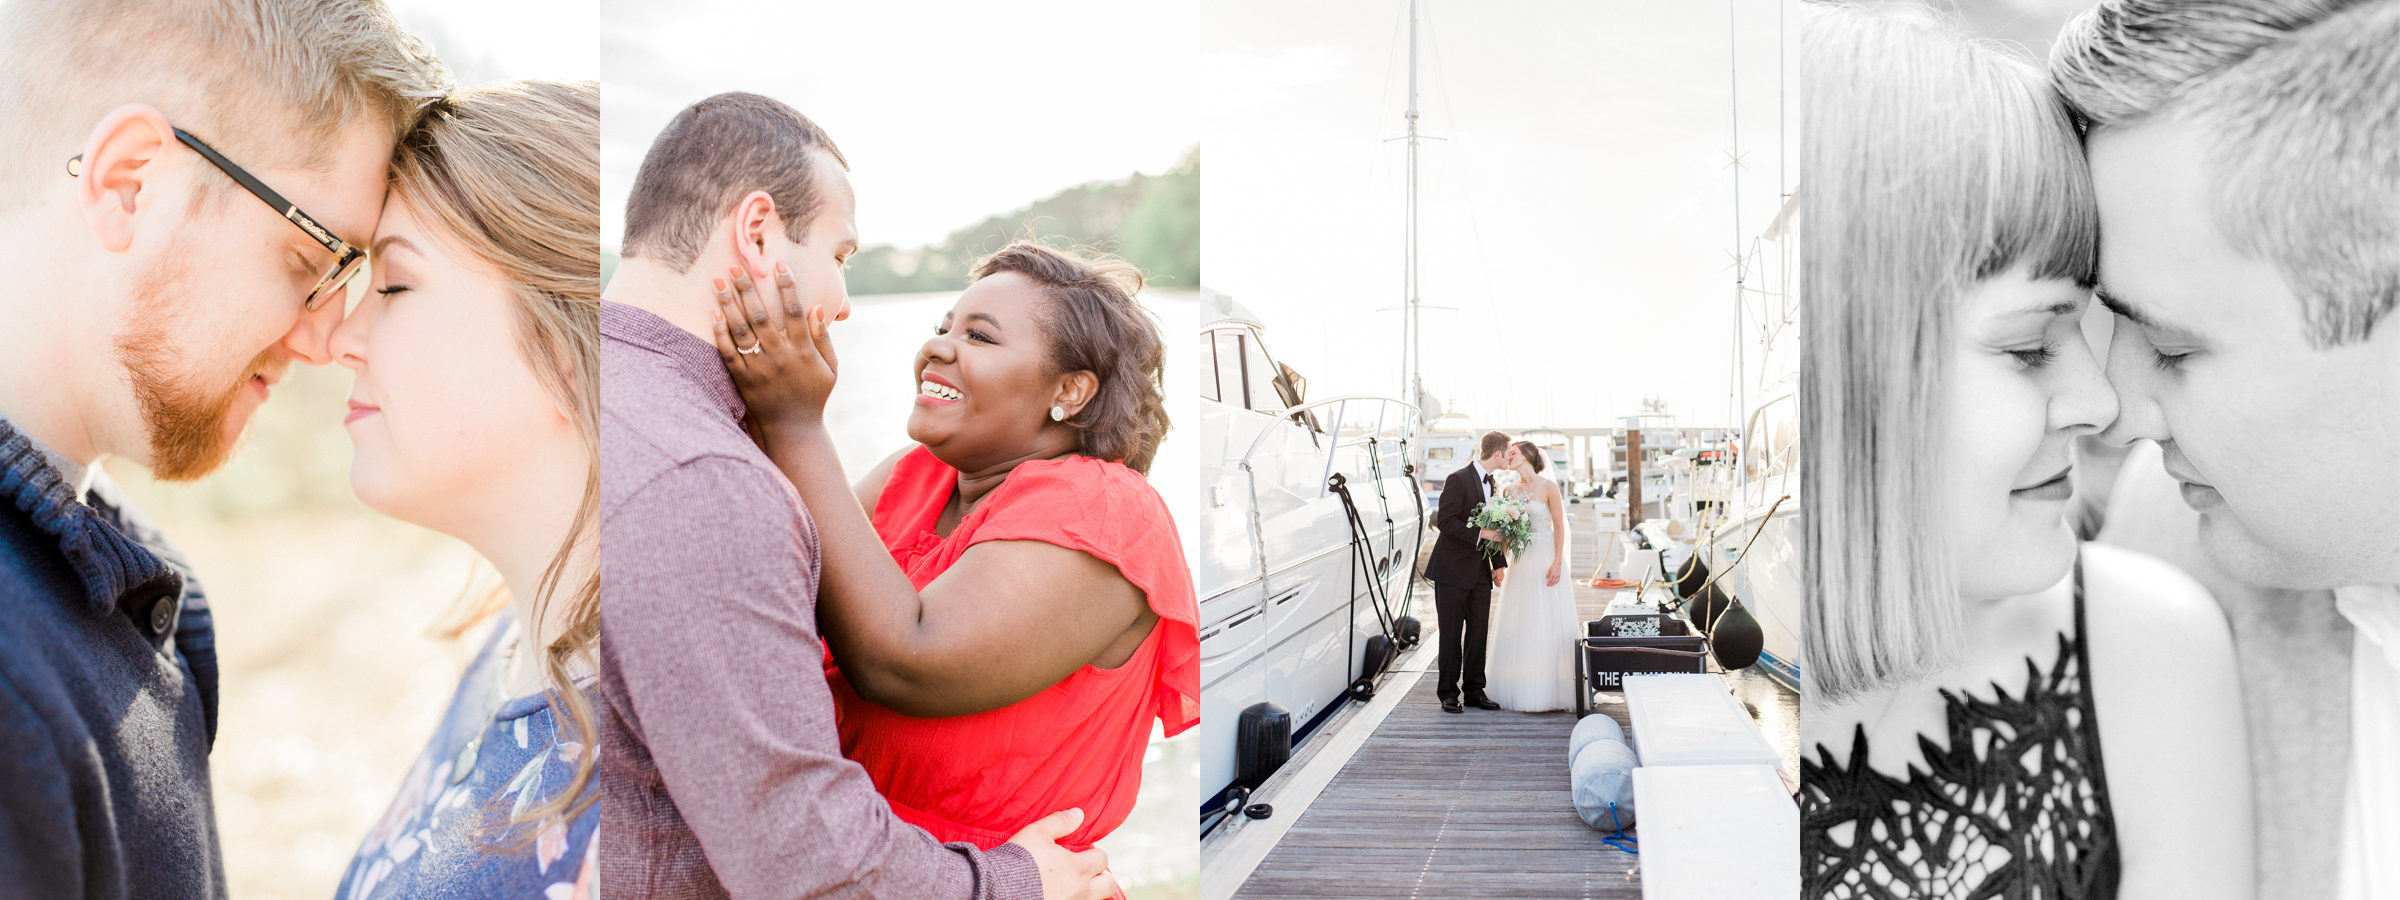 Kesia Marie Photography - Atlanta Fine Art Wedding & Portrait Photographer